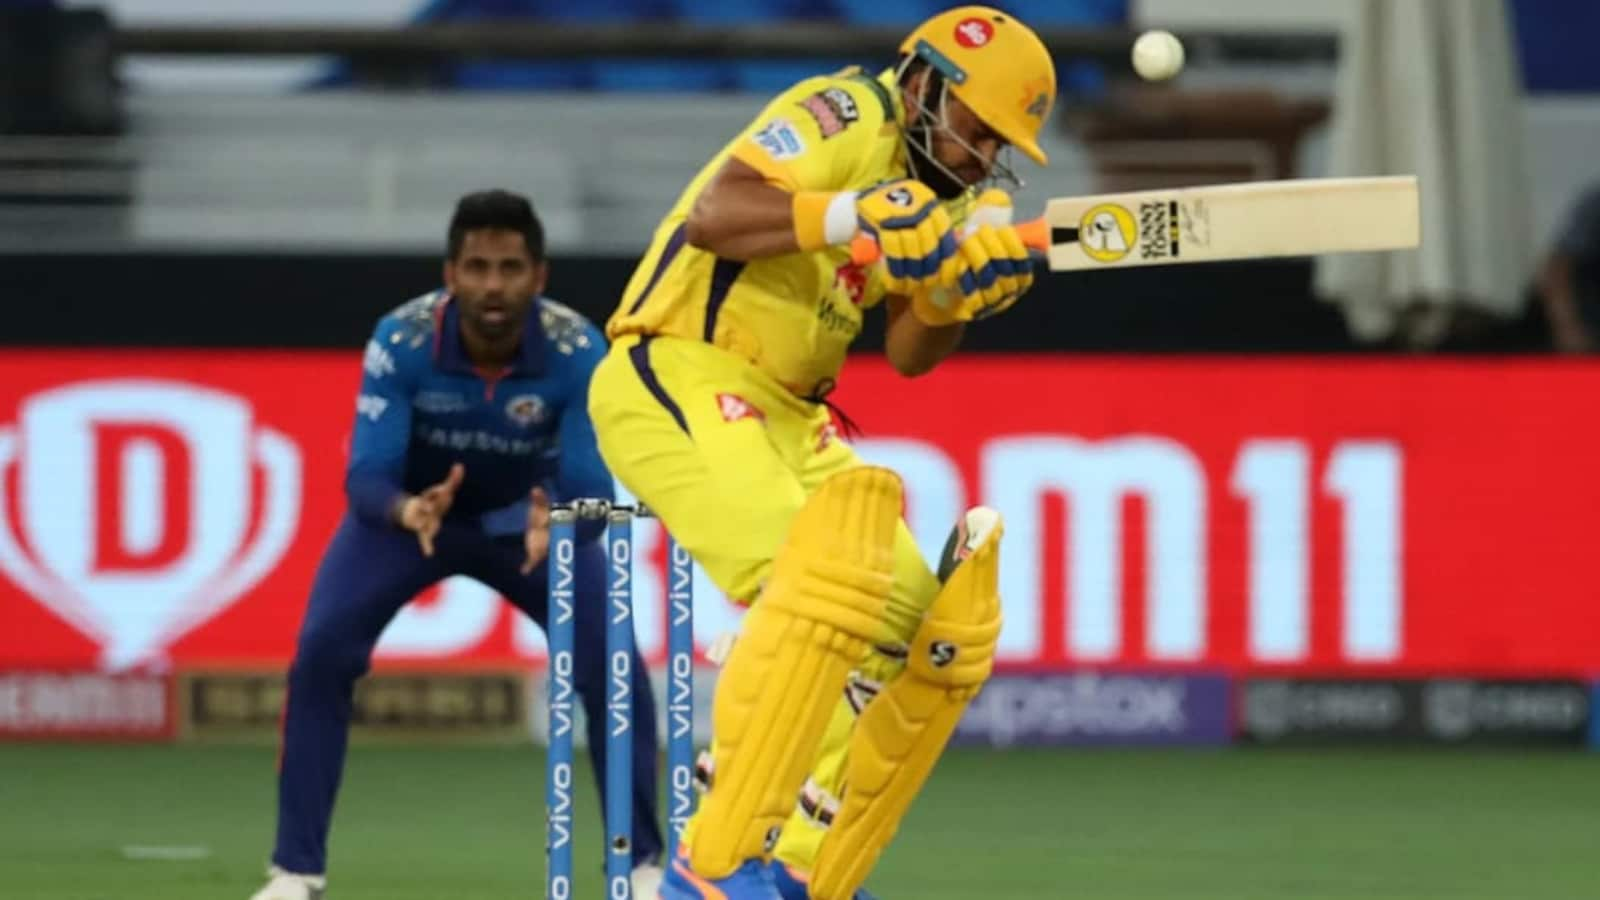 He's known for brilliant fielding, hitting the ball out of ground. But we  haven't seen it': Pollock on Raina's struggle | Cricket - Hindustan Times